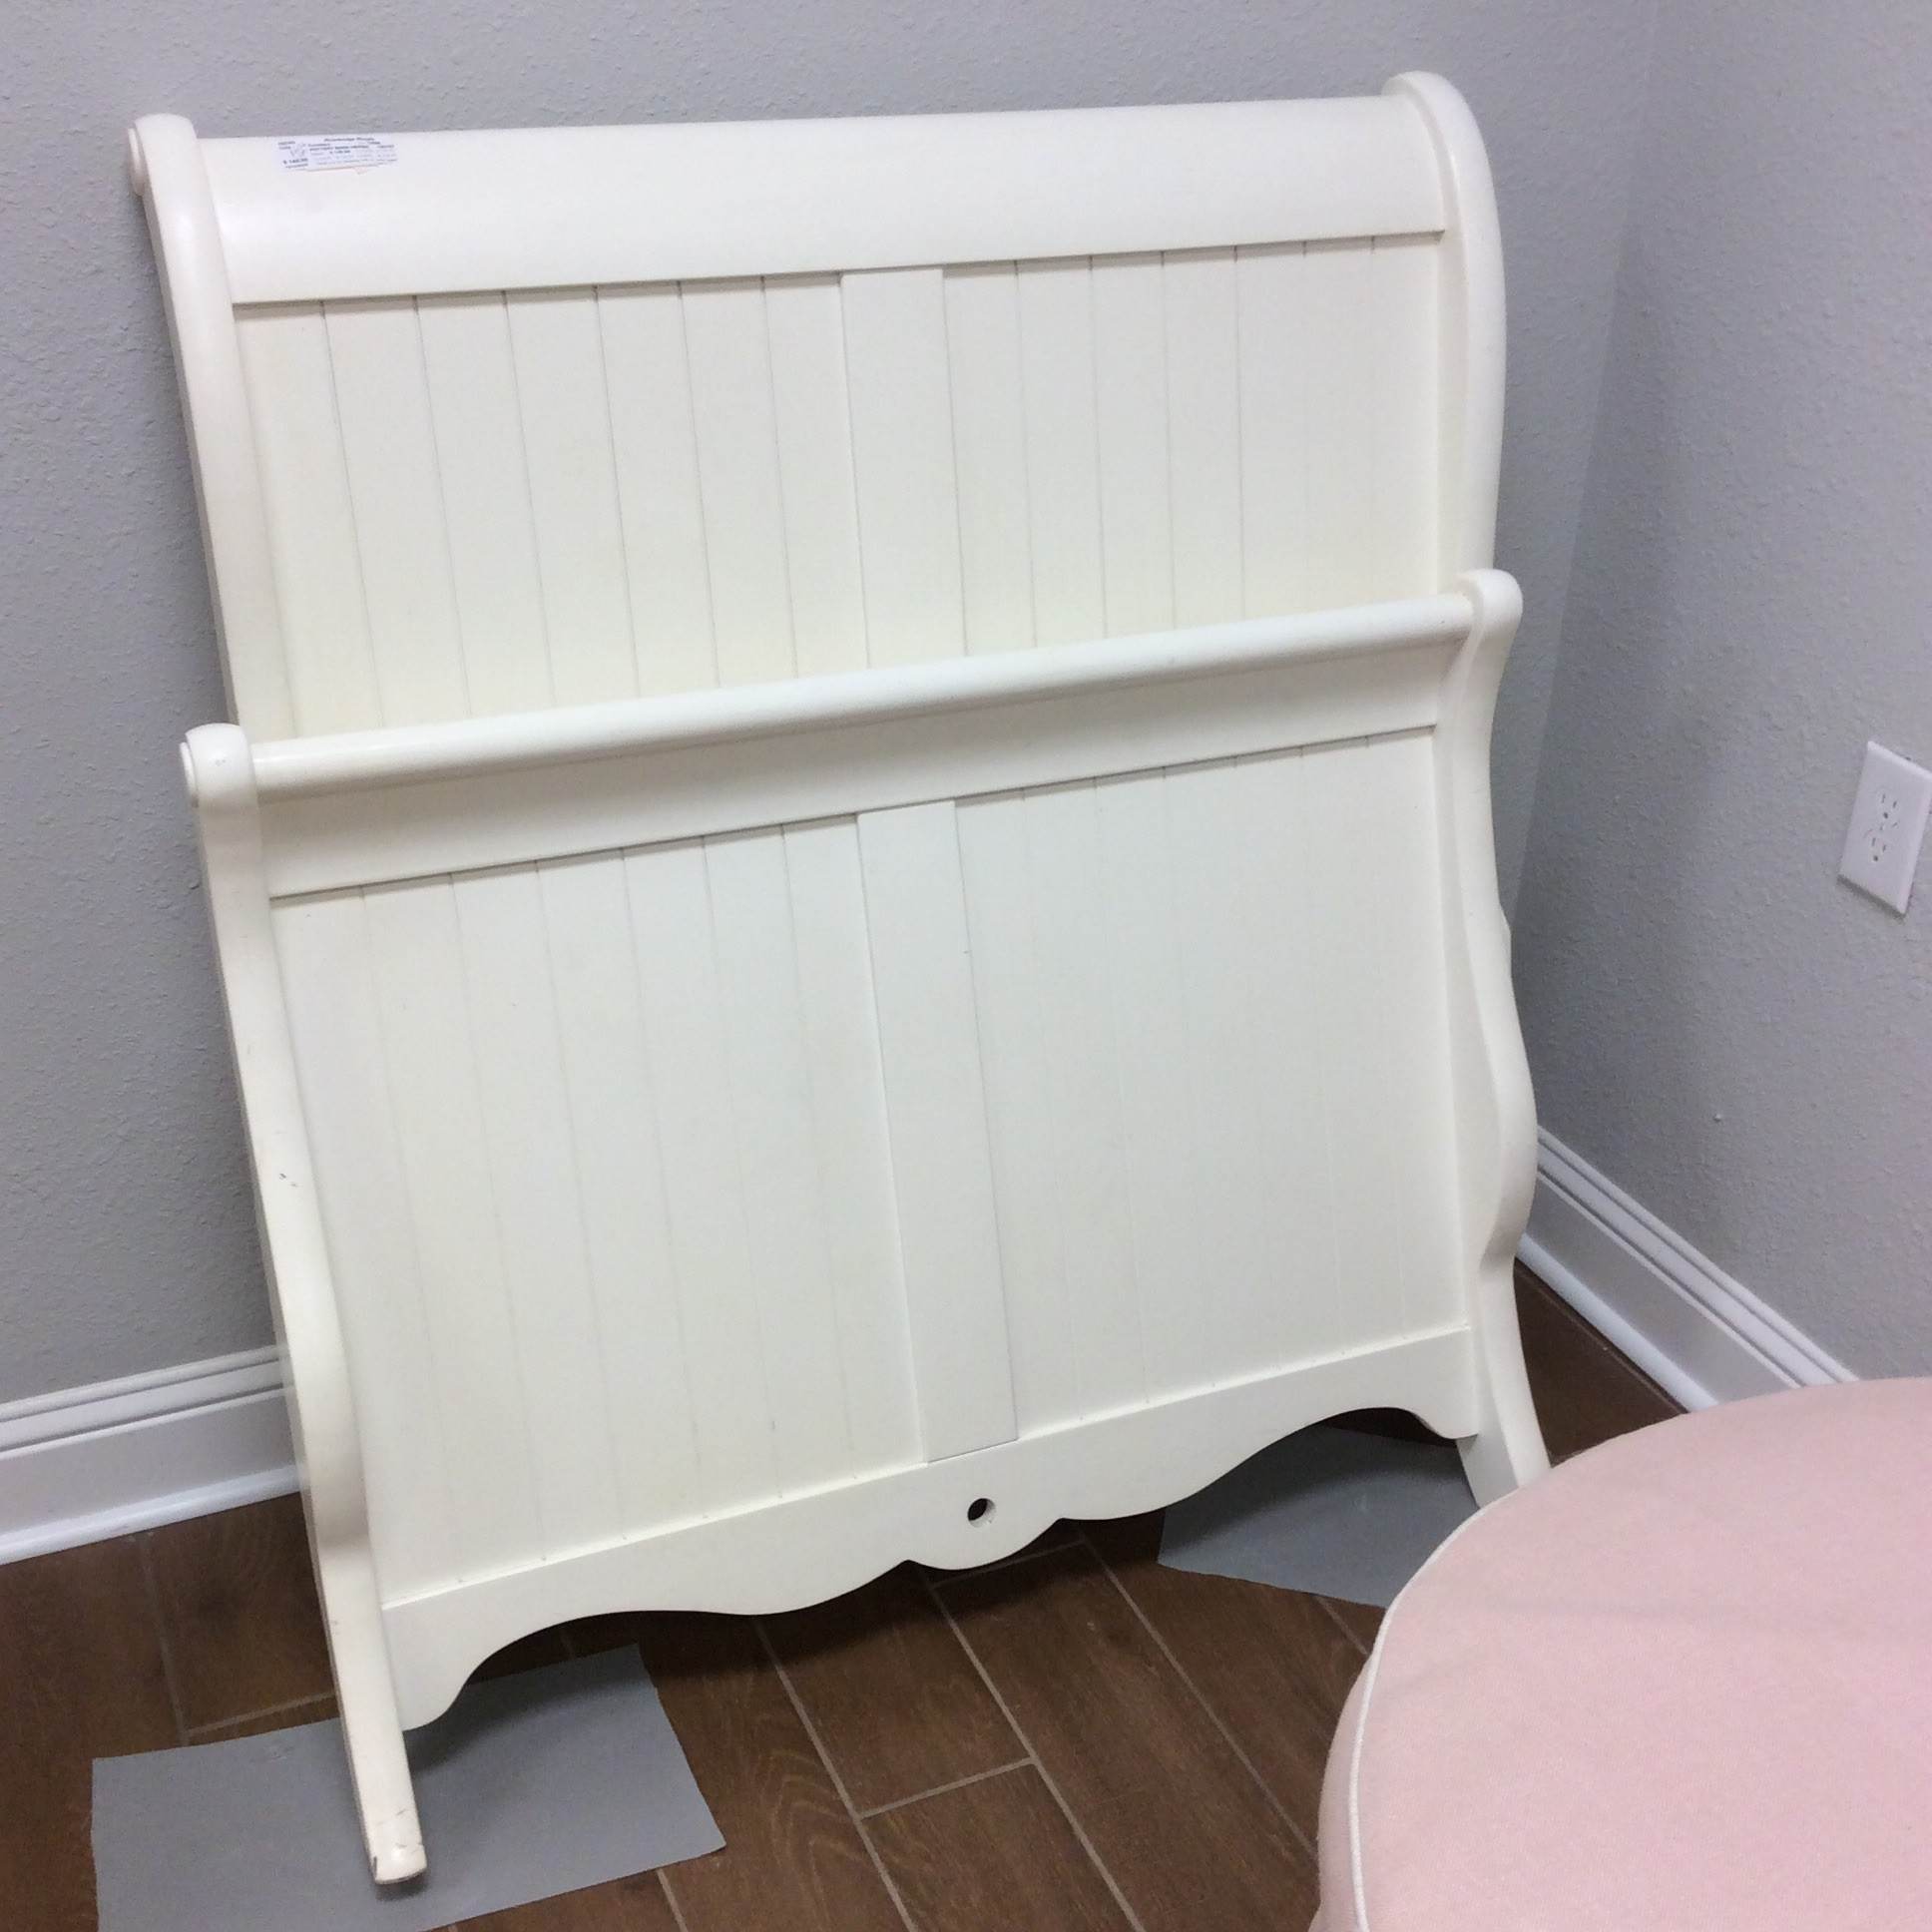 This twin-sized bed from Pottery Barn would be precious in a young girls room! It's a sleigh bed painted a creamy vanilla and comes with rails. Priced well too!